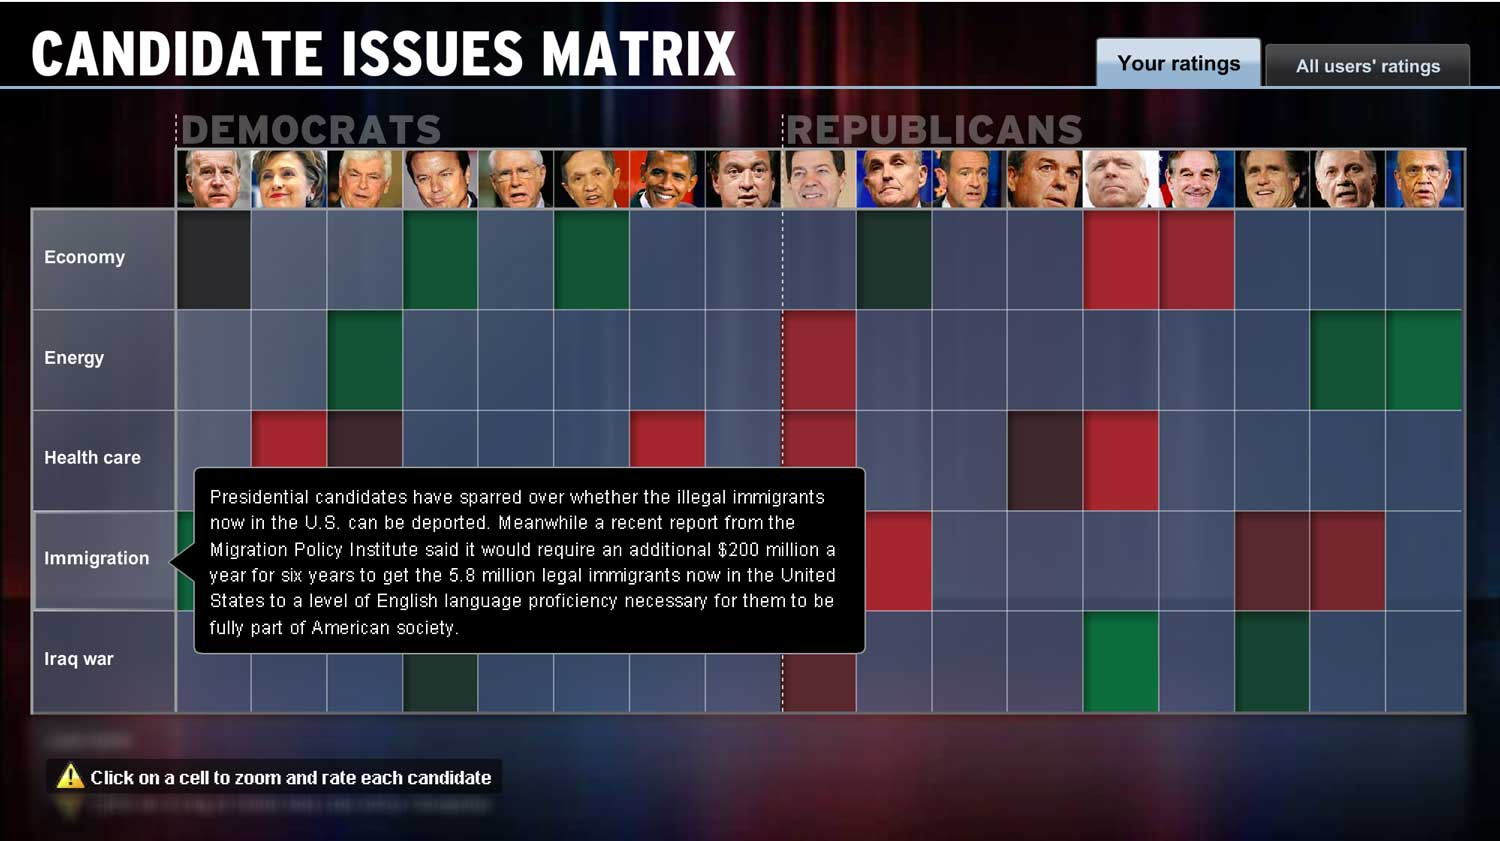 Candidates + Issues Matrix: Issue detail